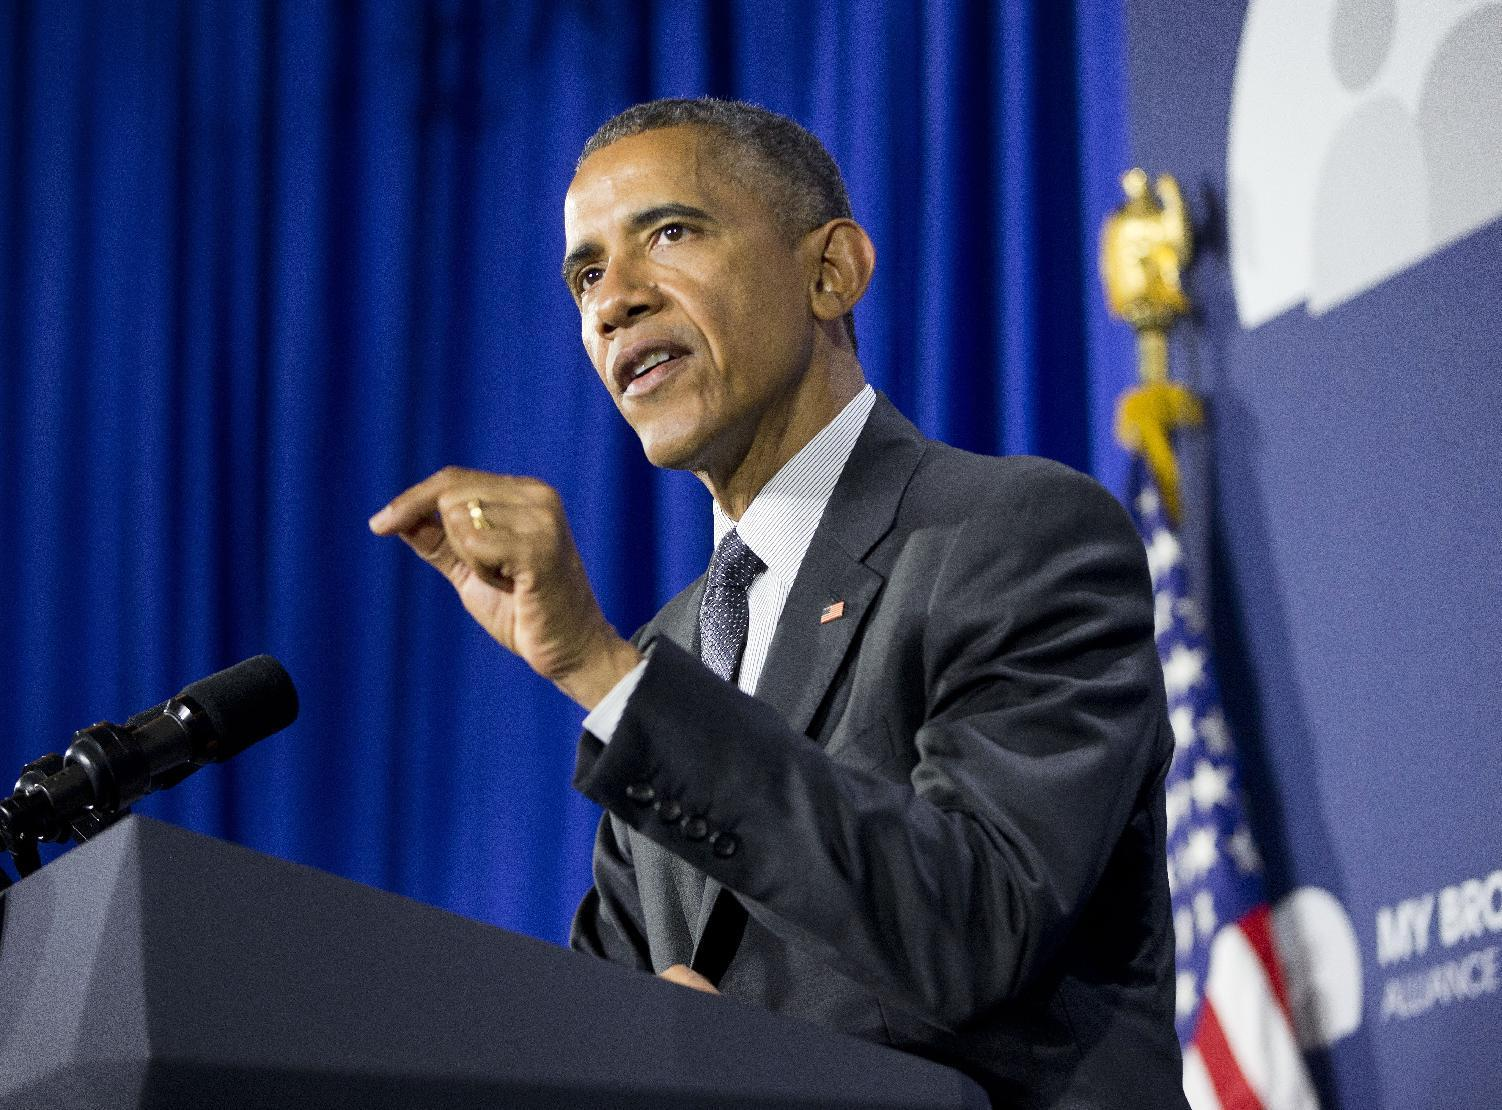 Obama on protests: 'There are consequences to indifference'